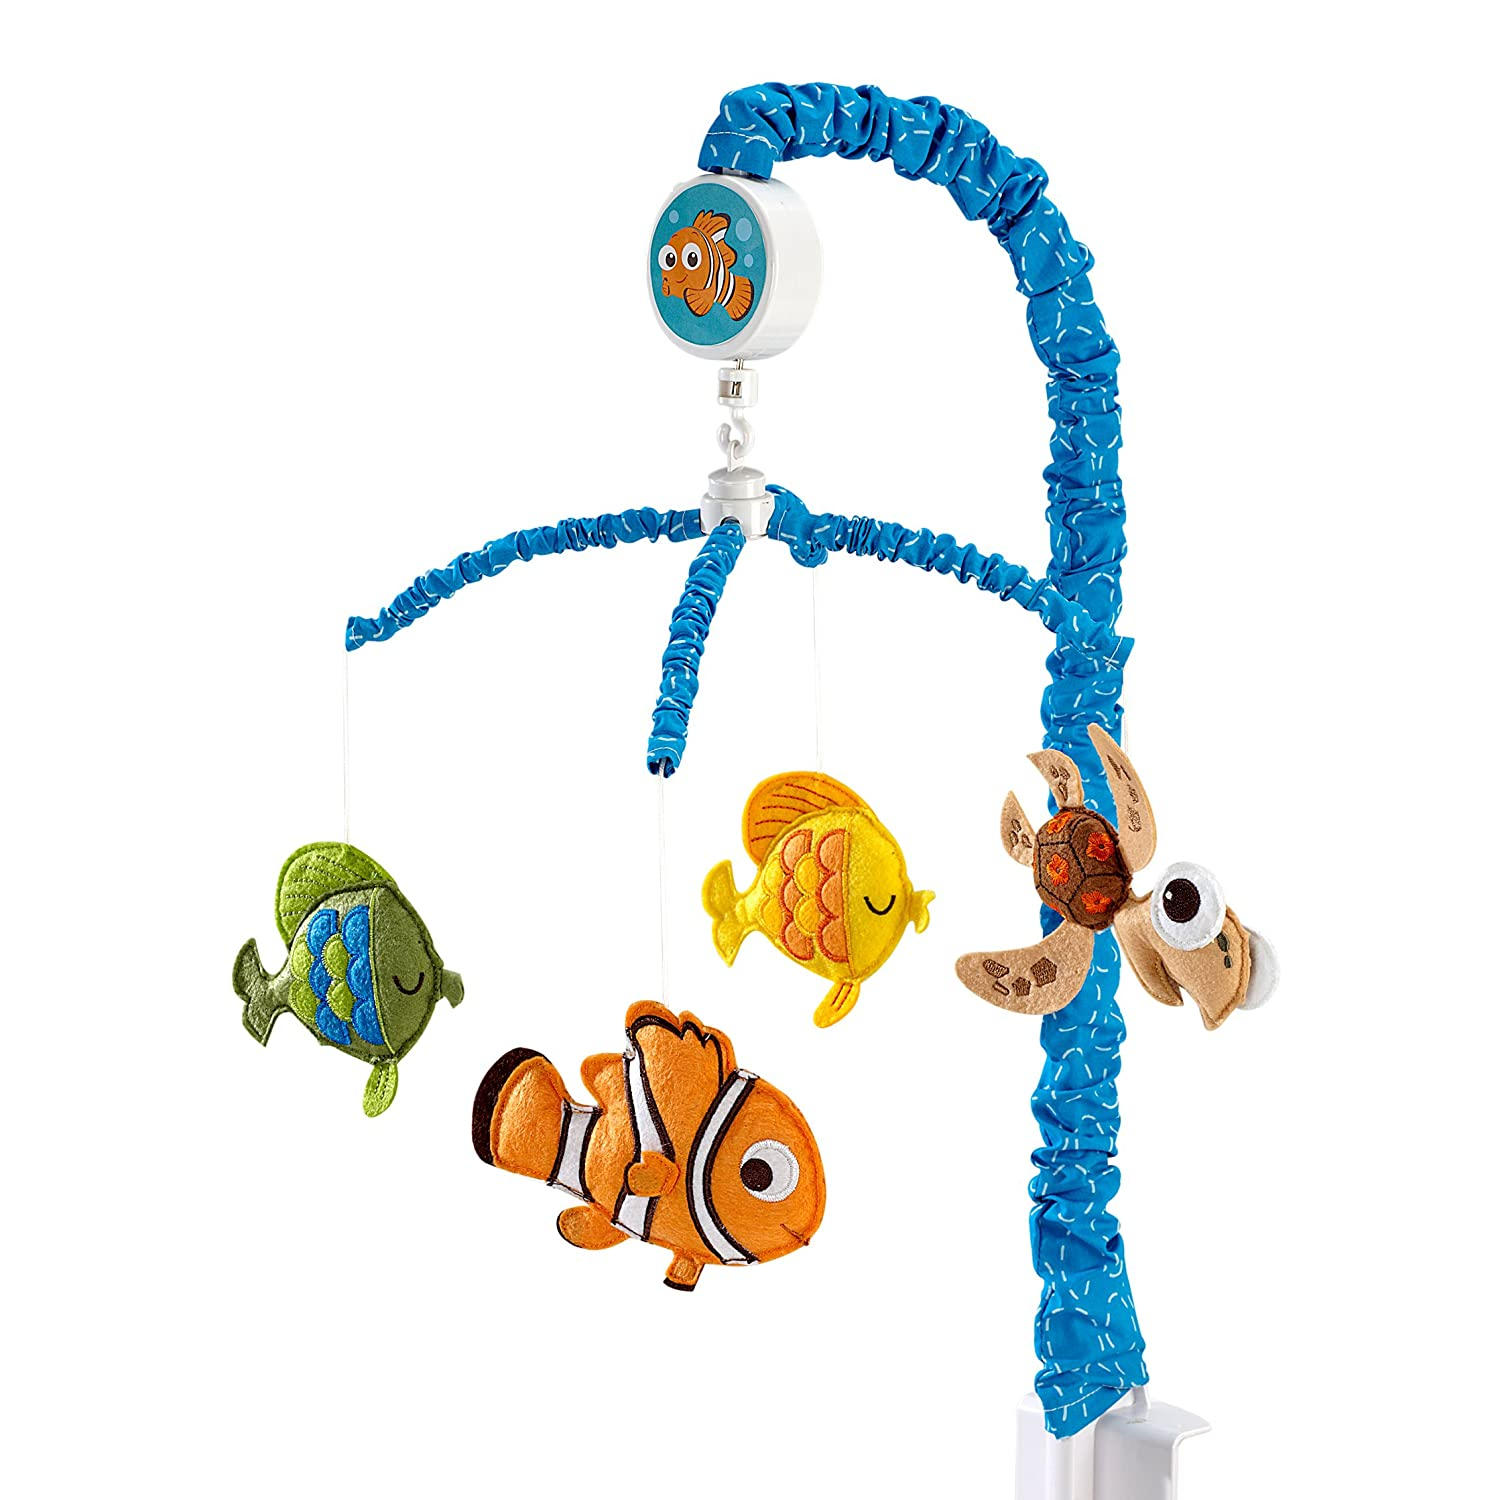 Disney Finding Nemo Musical Mobile, Blue Crown Crafts Inc 3065079